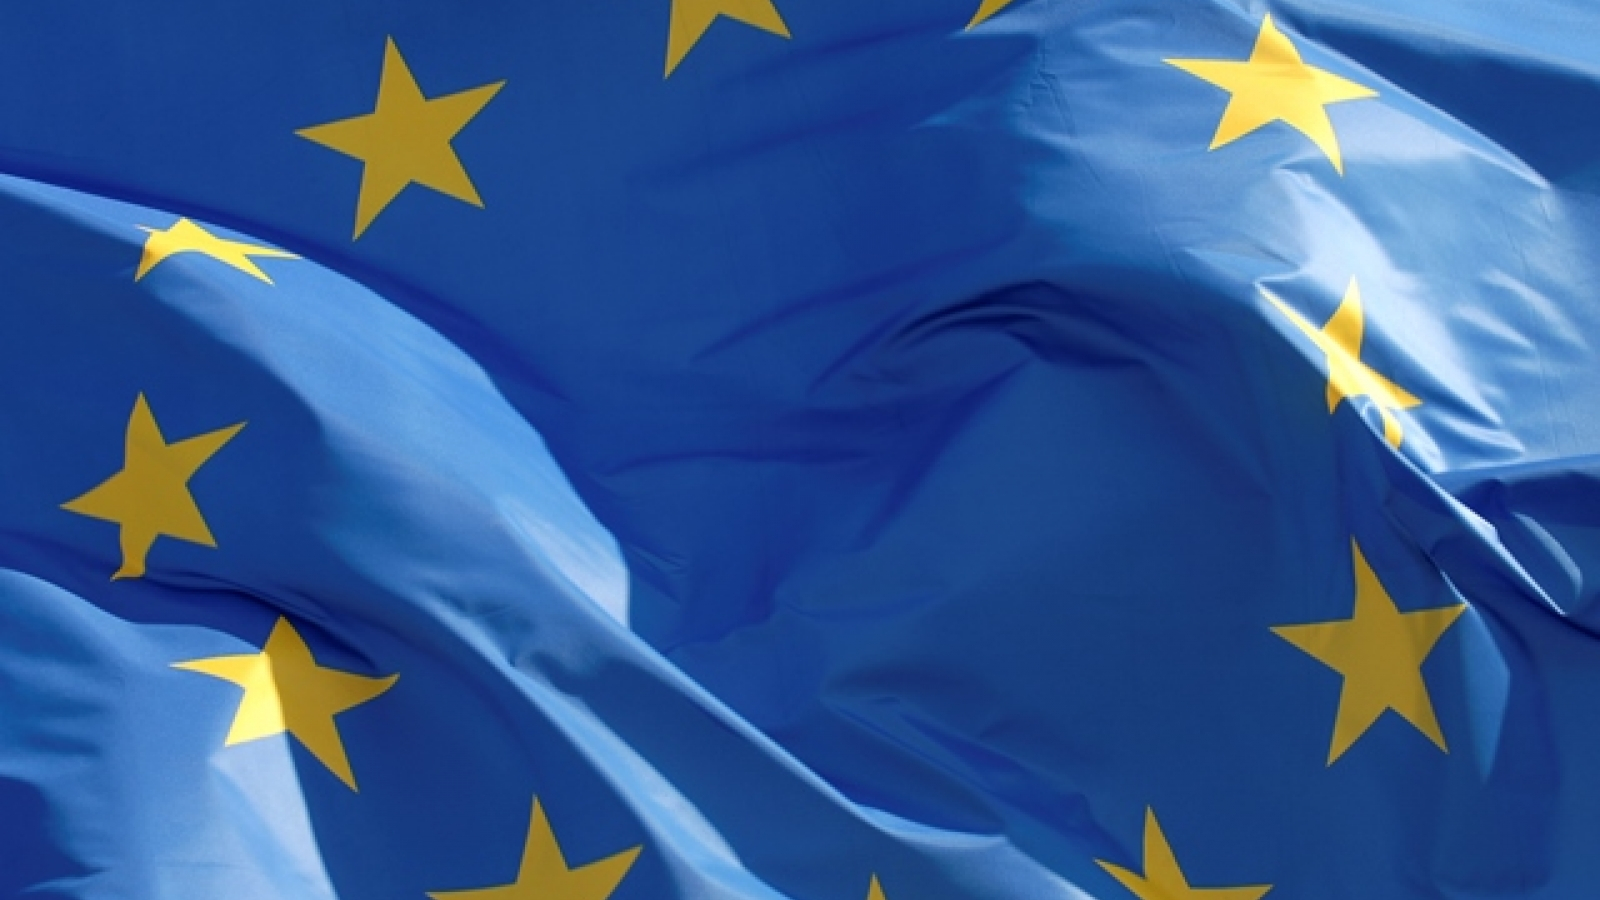 10th anniversary of EU Charter of Fundamental Rights